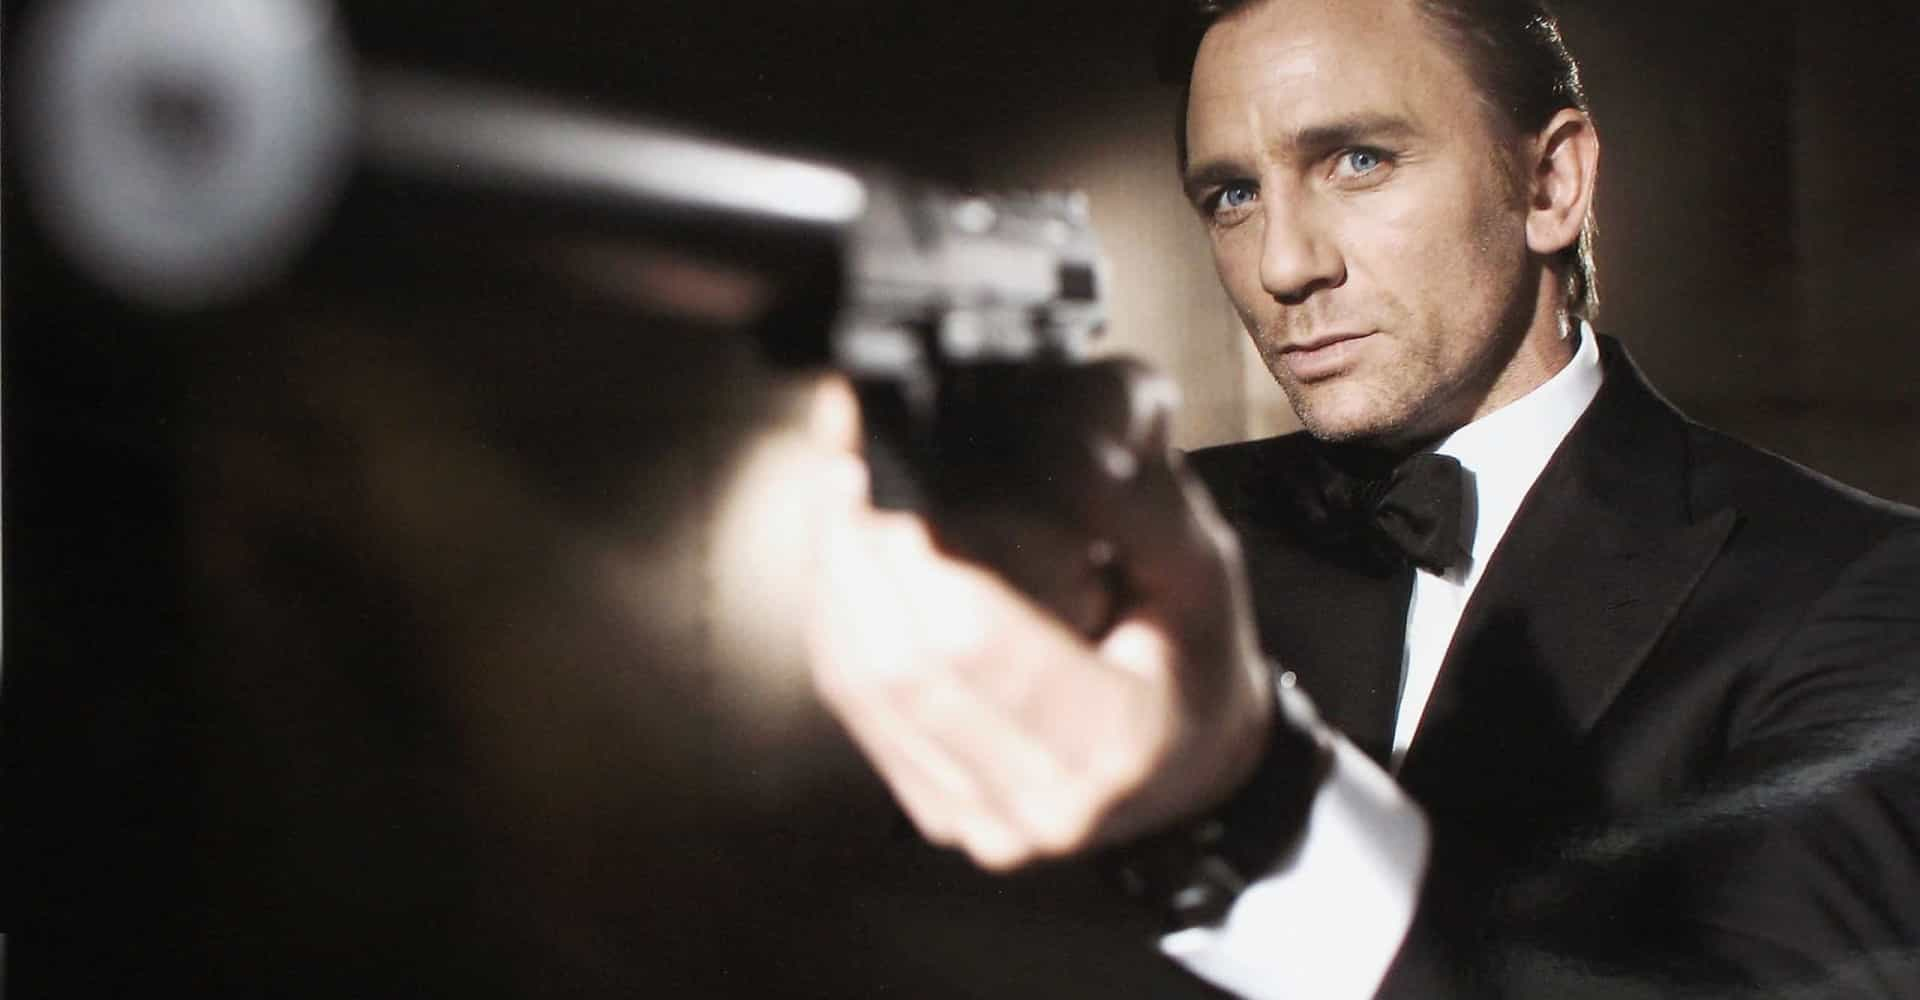 License to thrill: here's all you need to know about James Bond